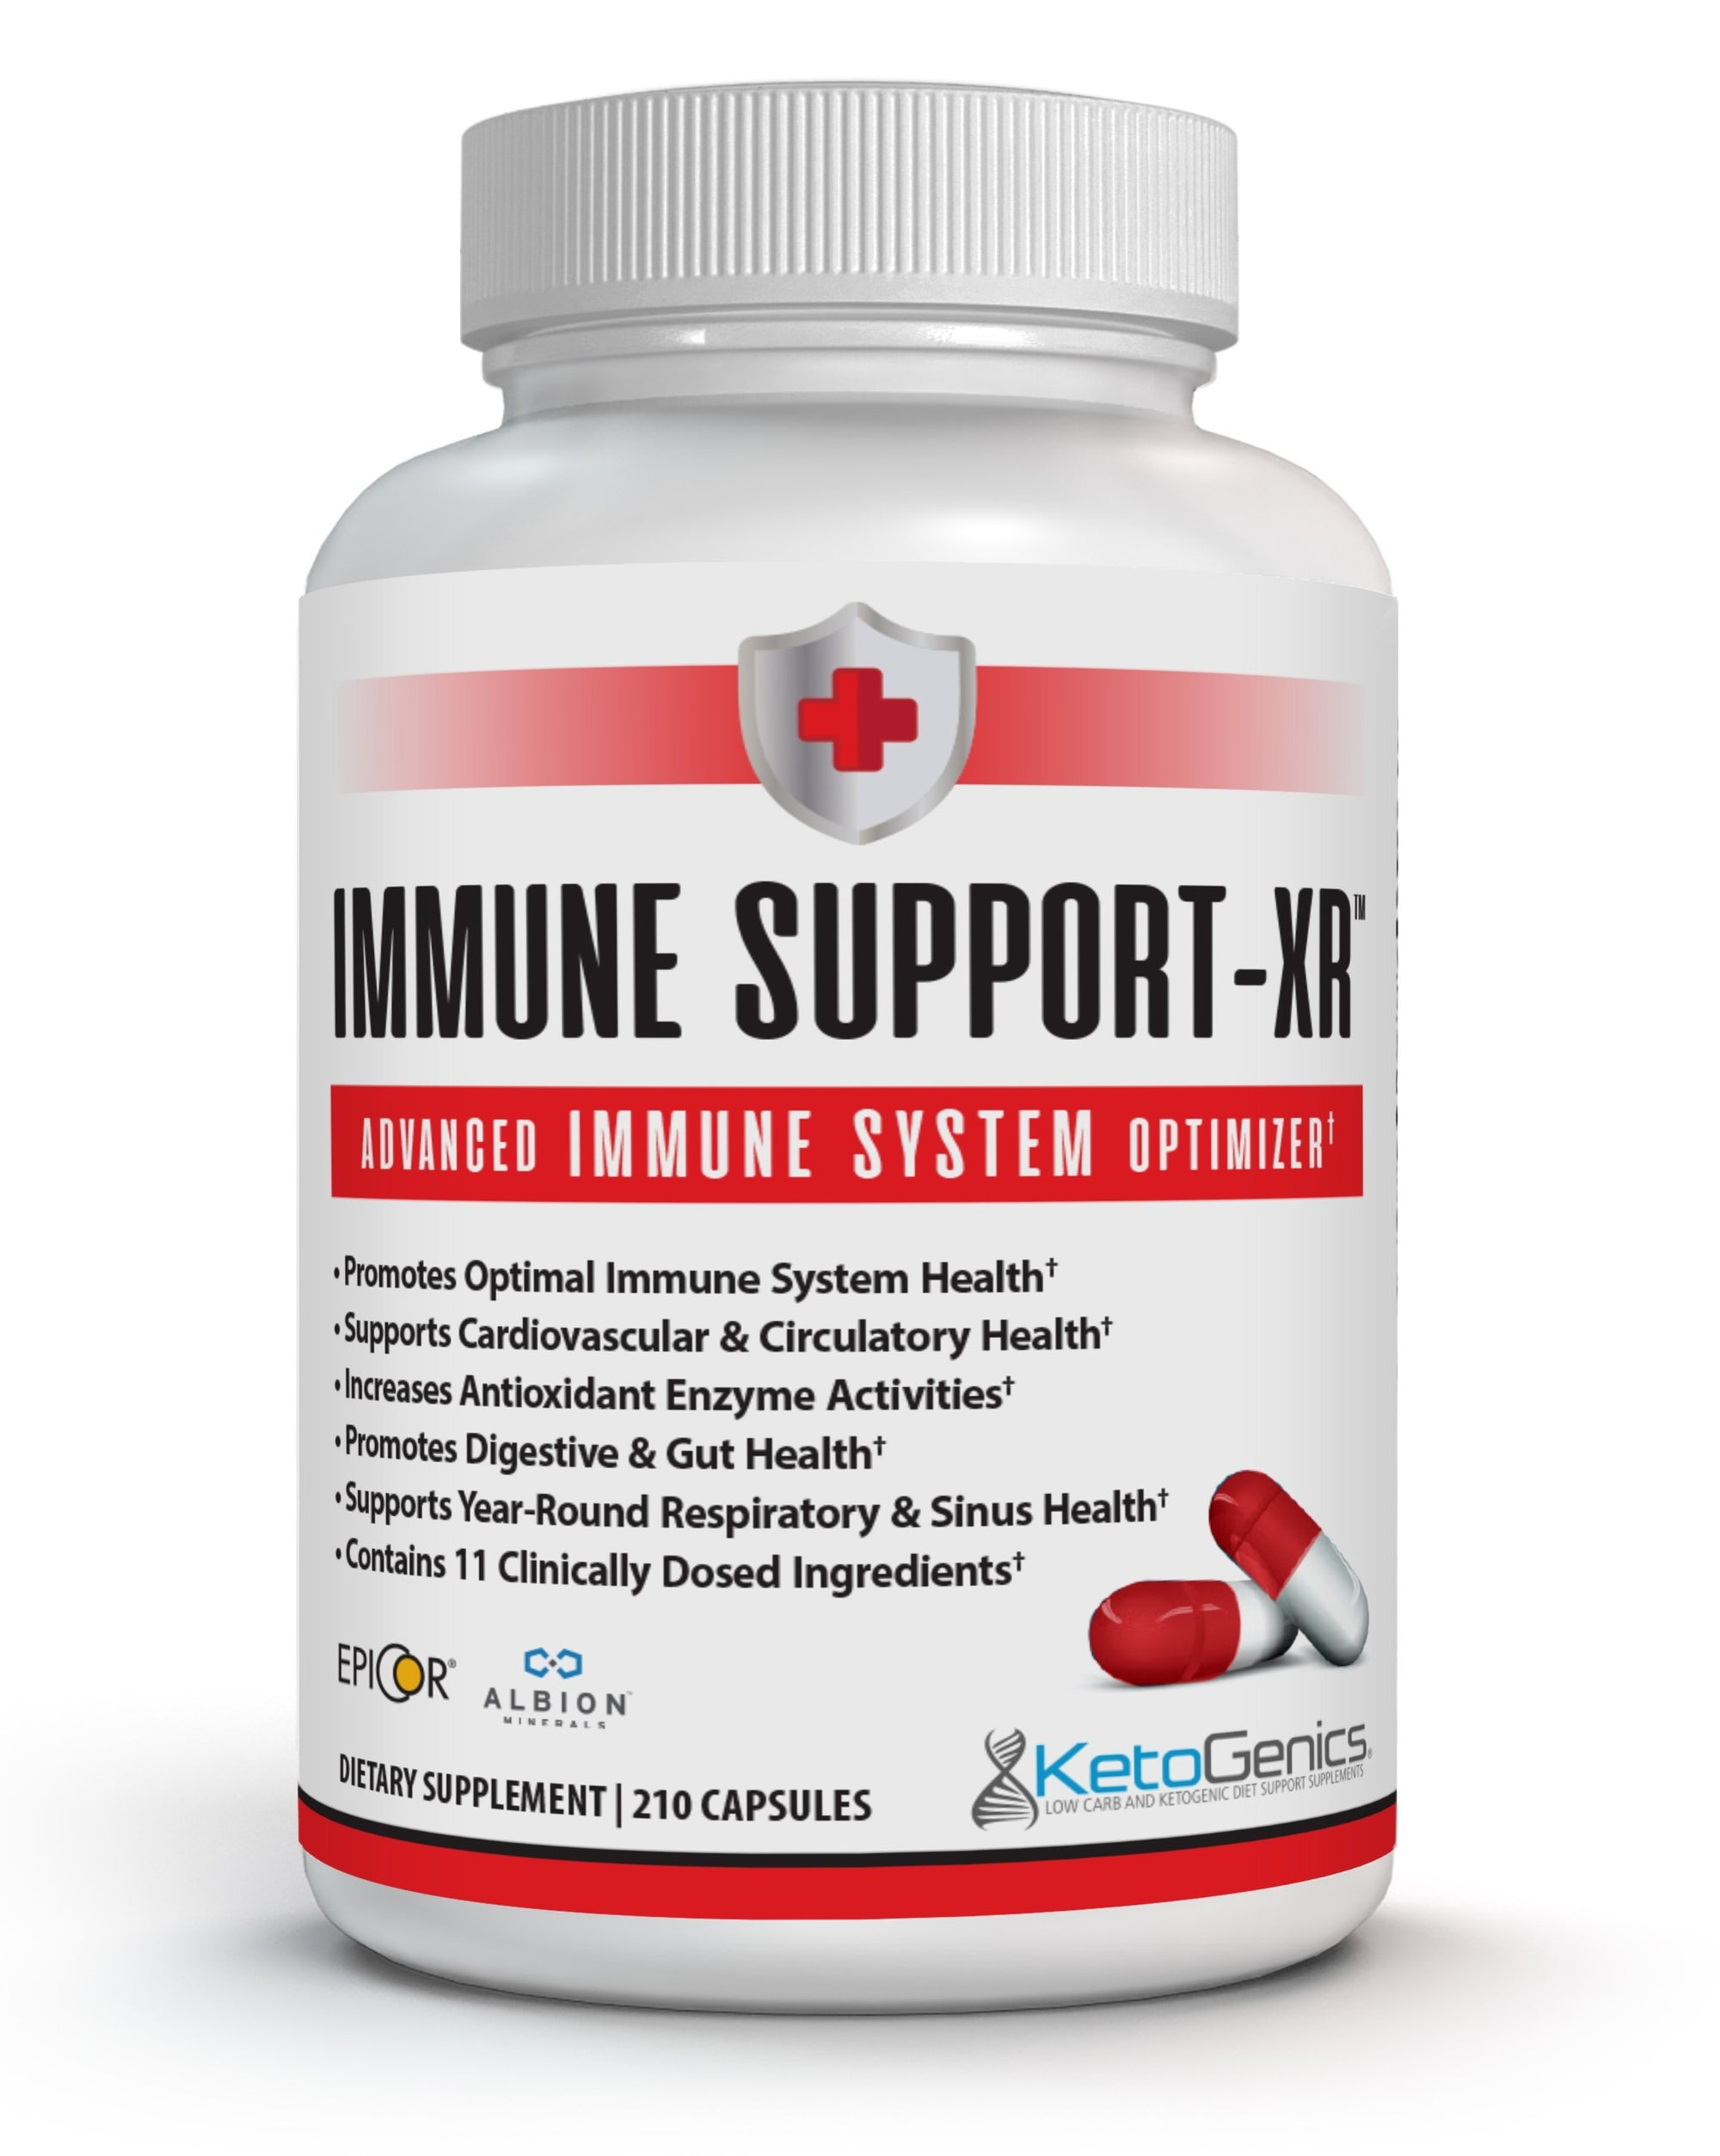 Immune Support - XR